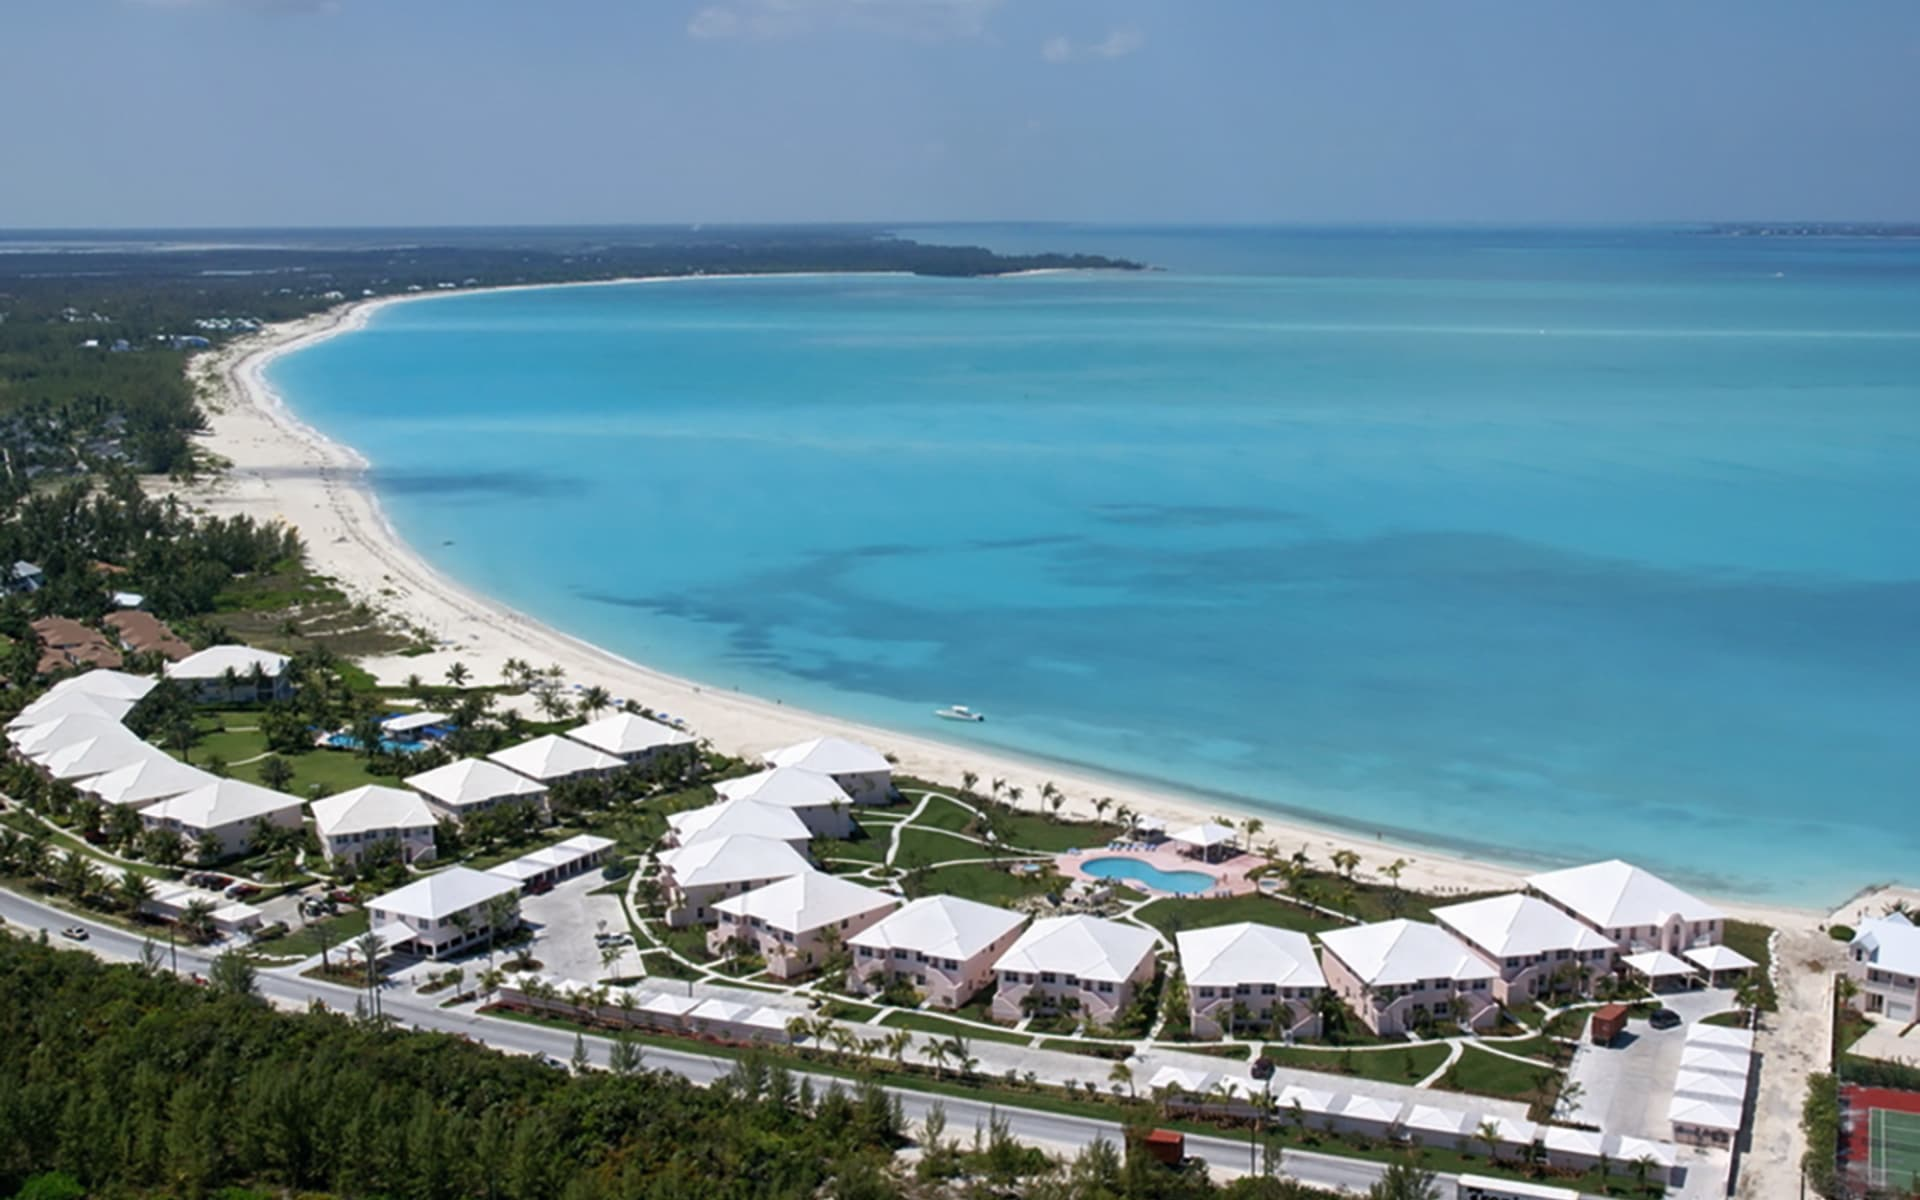 Bahama Beach Club in Treasure Cay: exterior bahama beach club hotelansicht meer